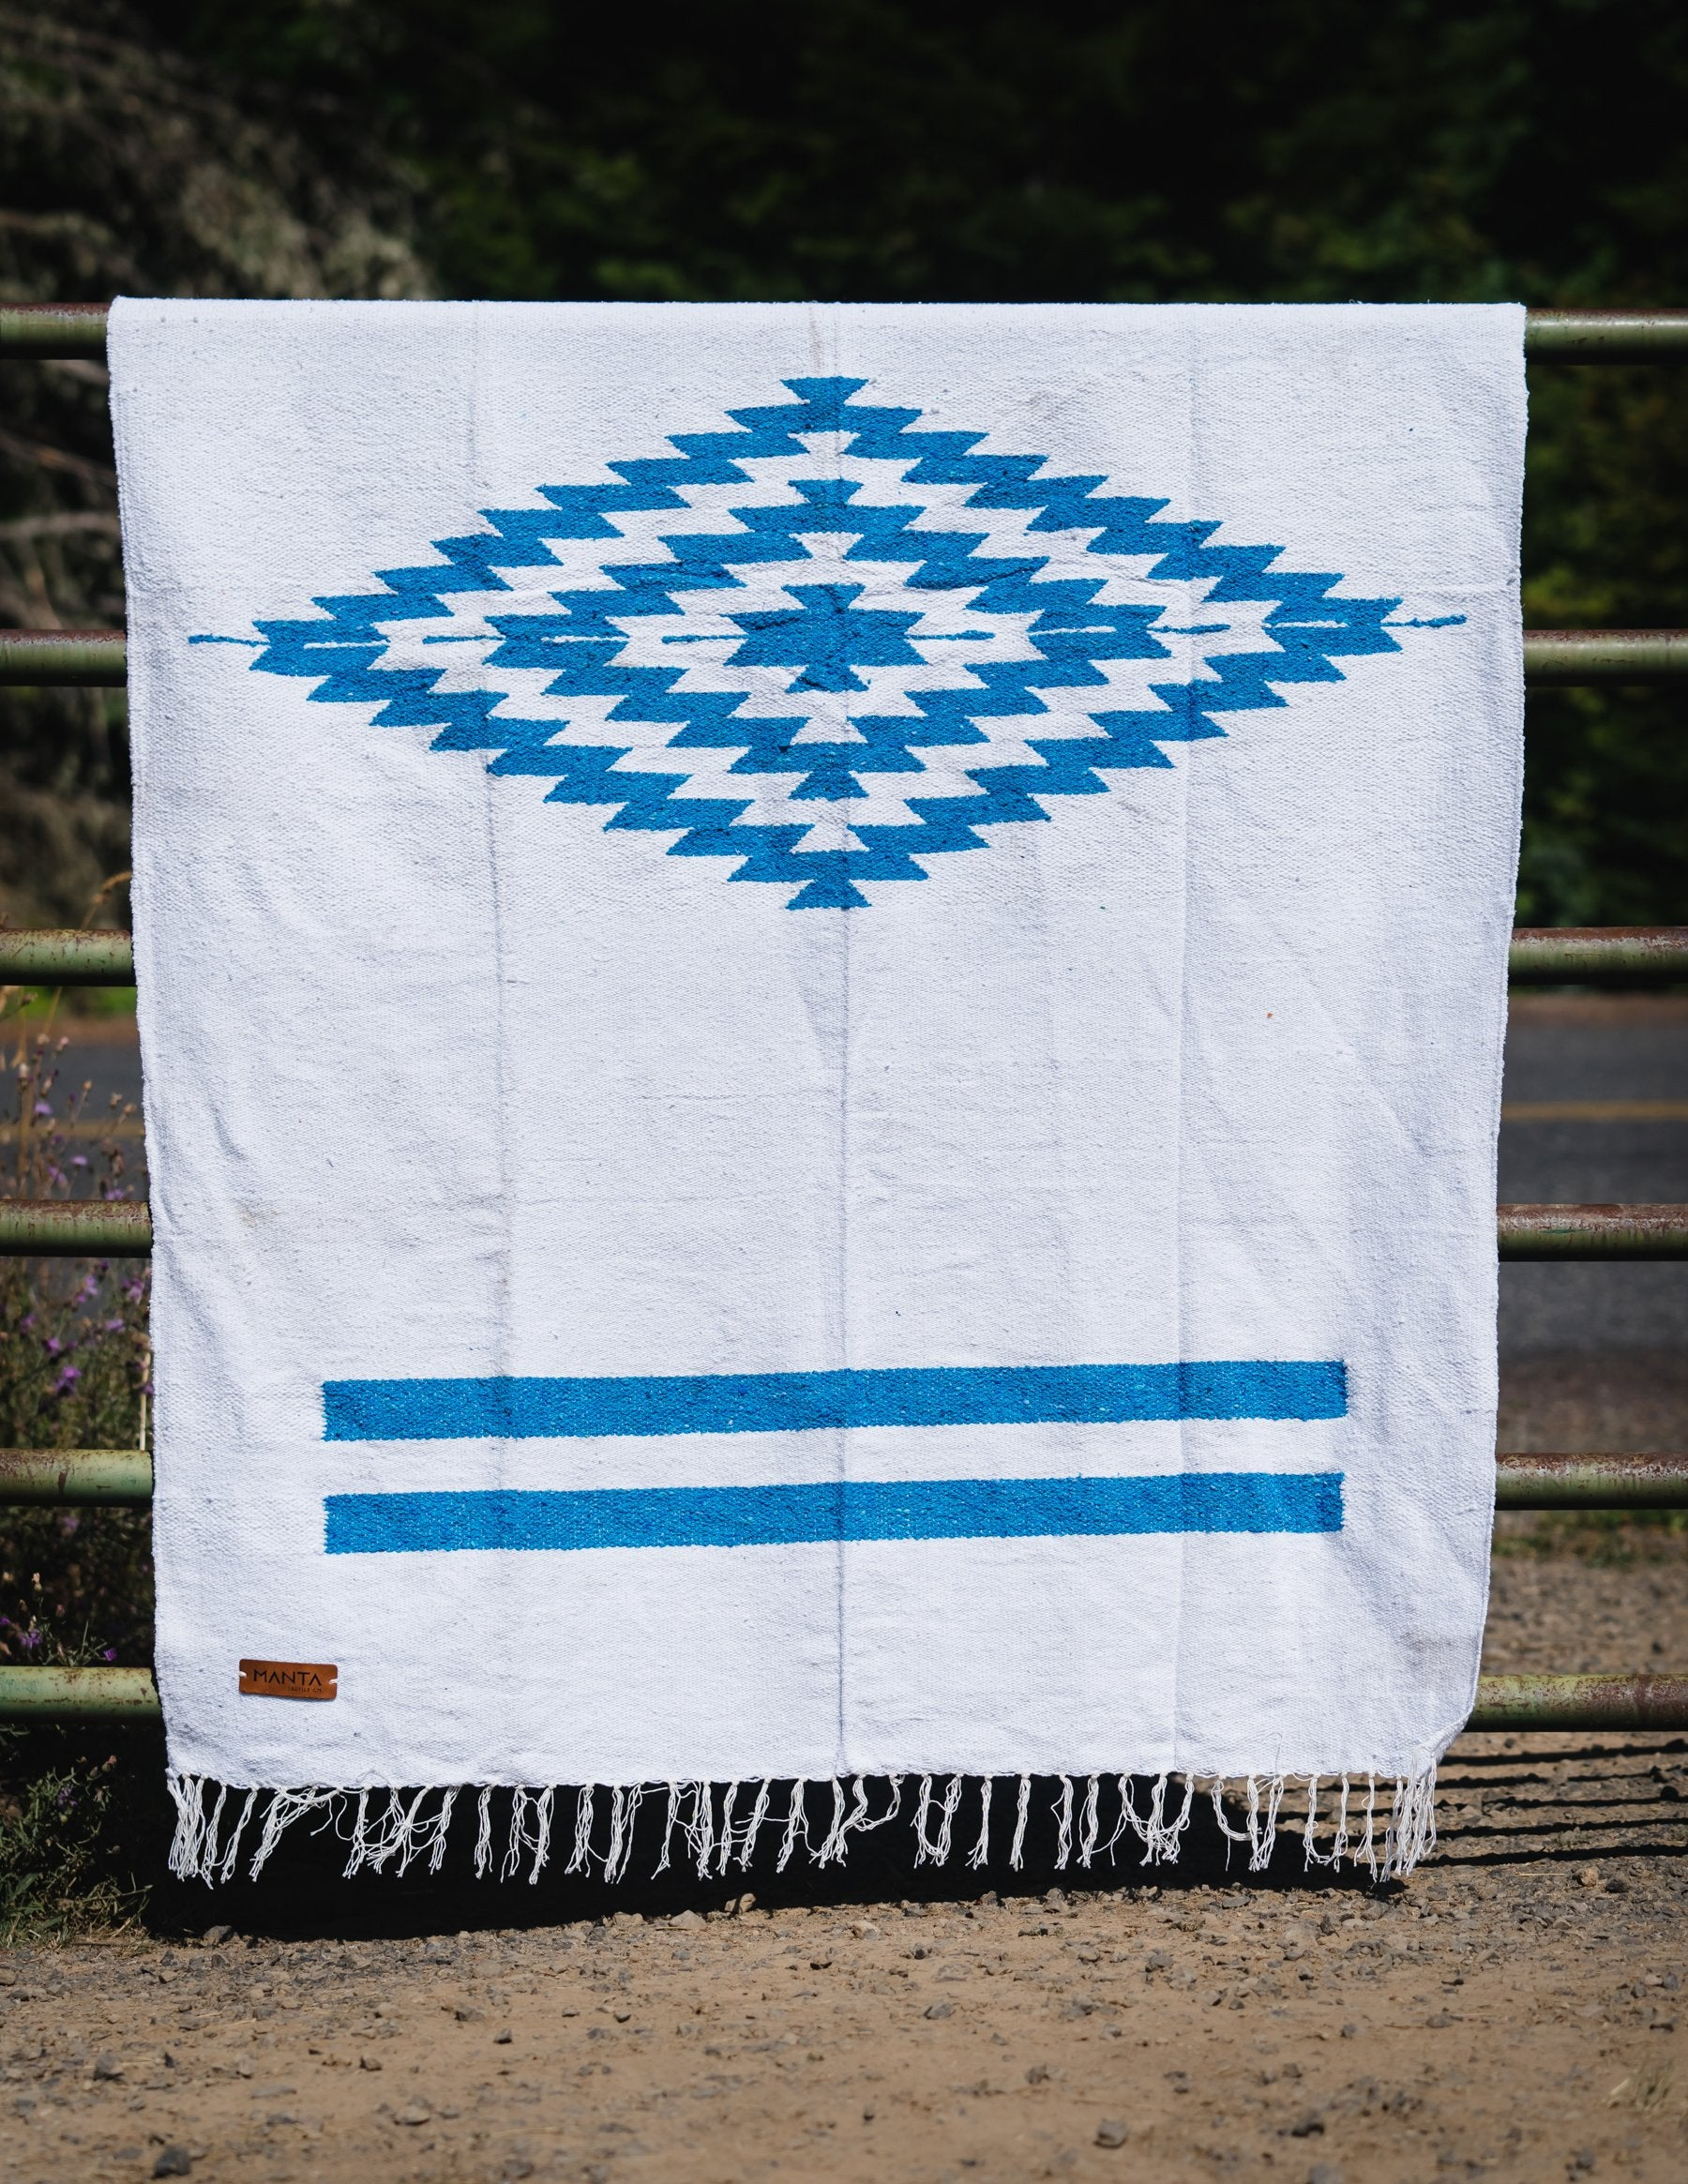 Cerritos Blue Diamond Blanket - Mantacompany.com